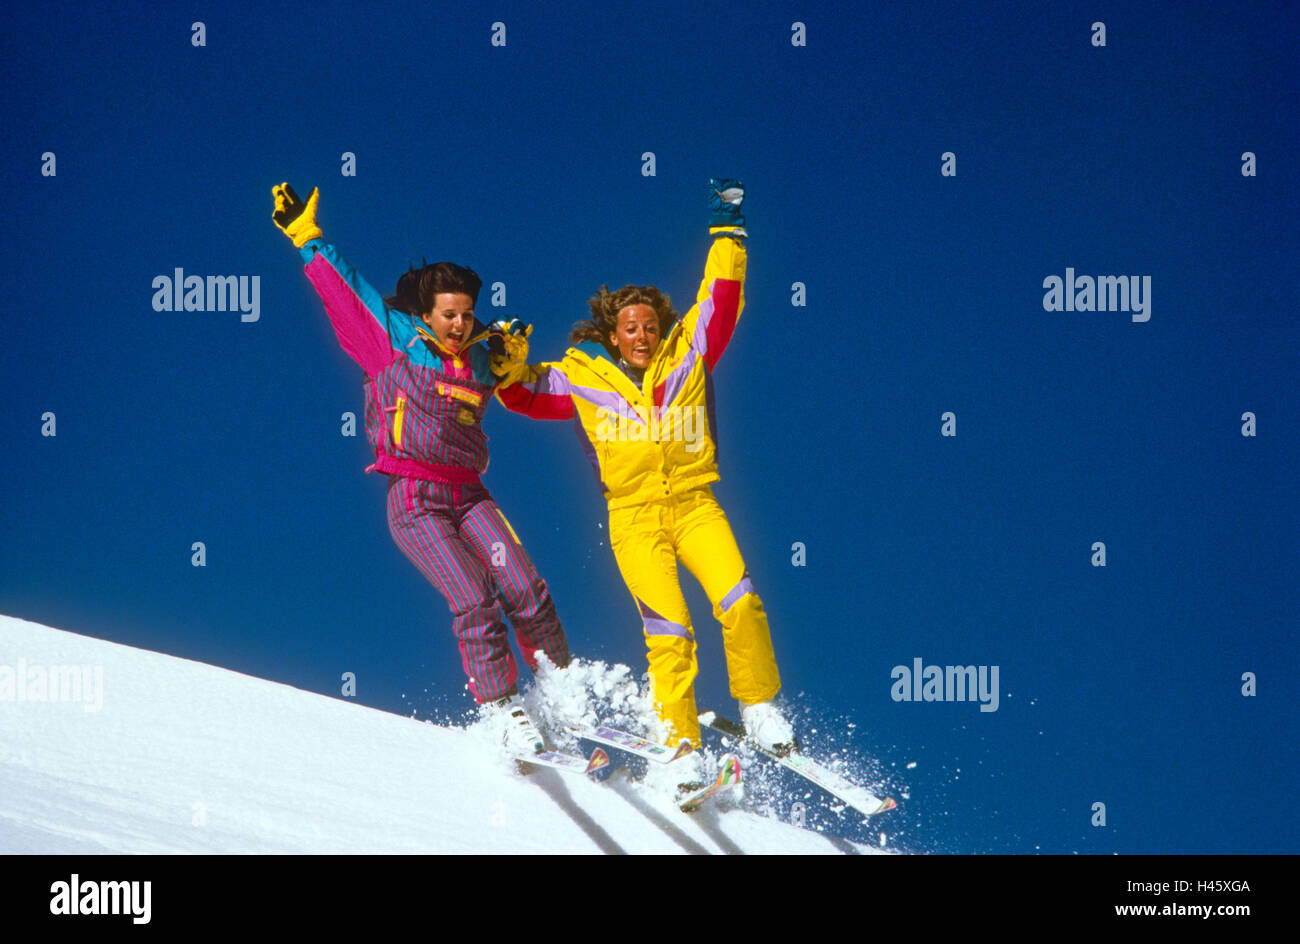 Two girls jumping on Ski's together - Stock Image